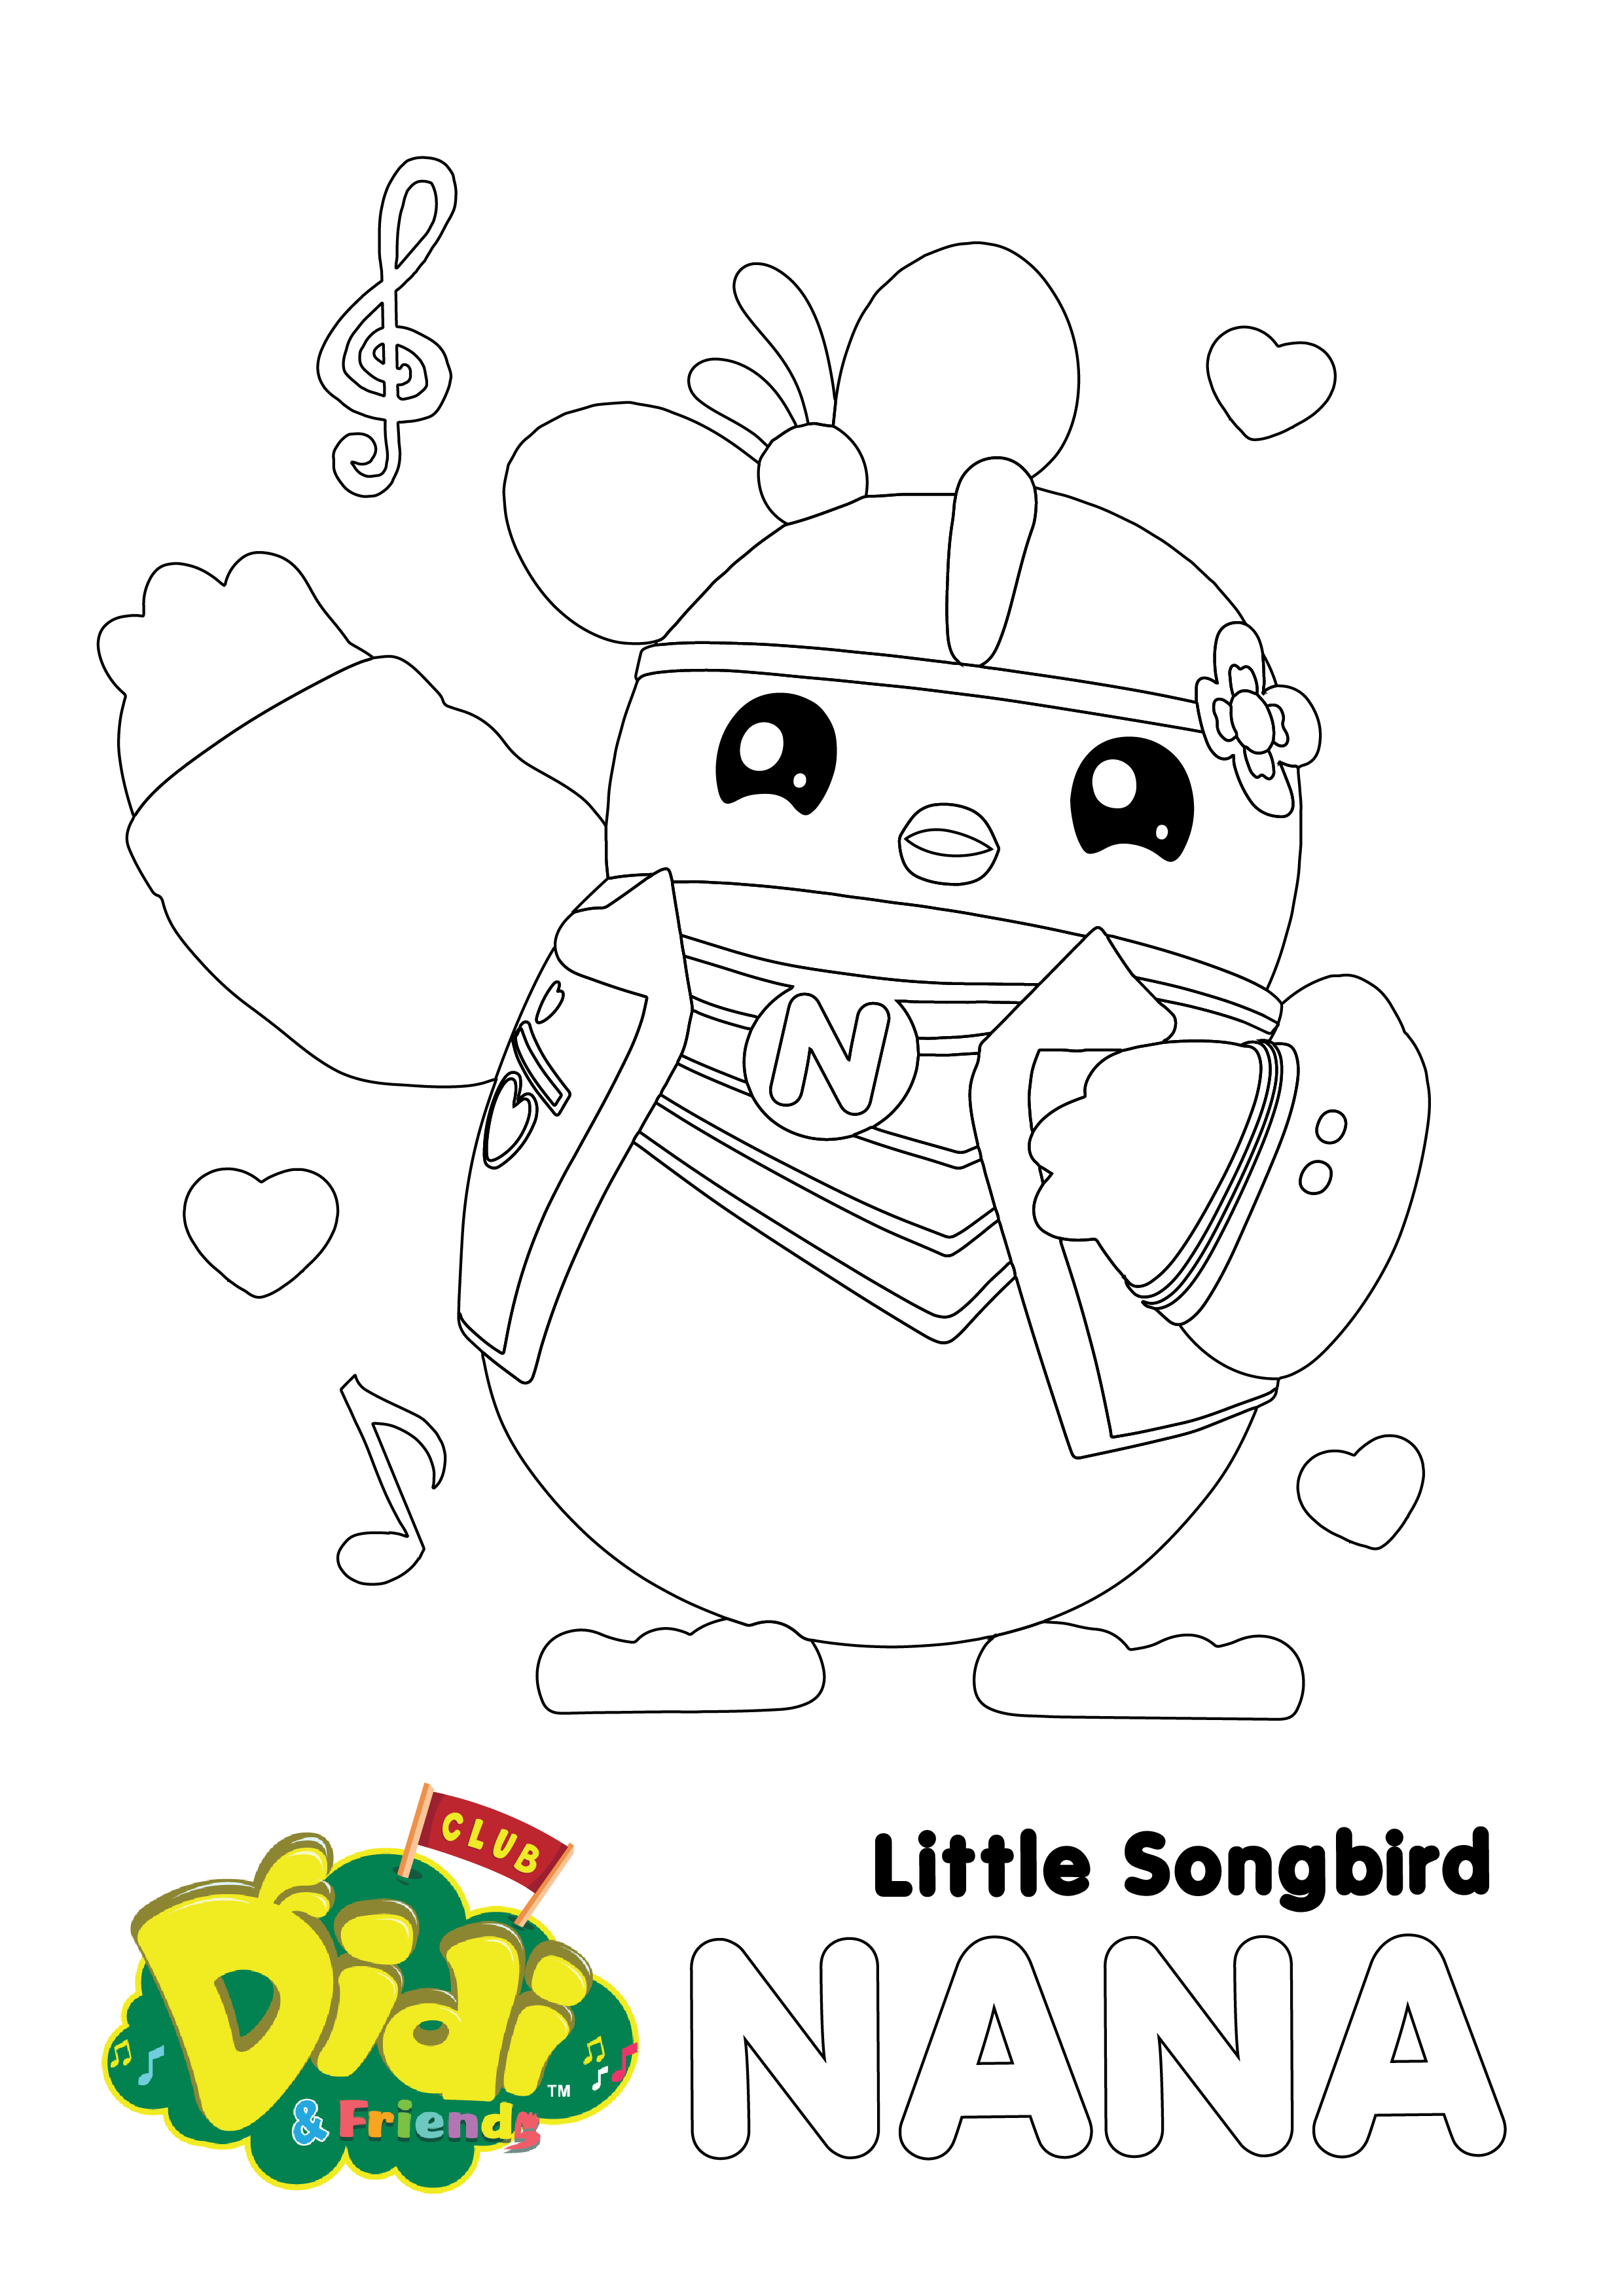 - Download This Free Colouring Sheet Of Nana! Click Here To Download